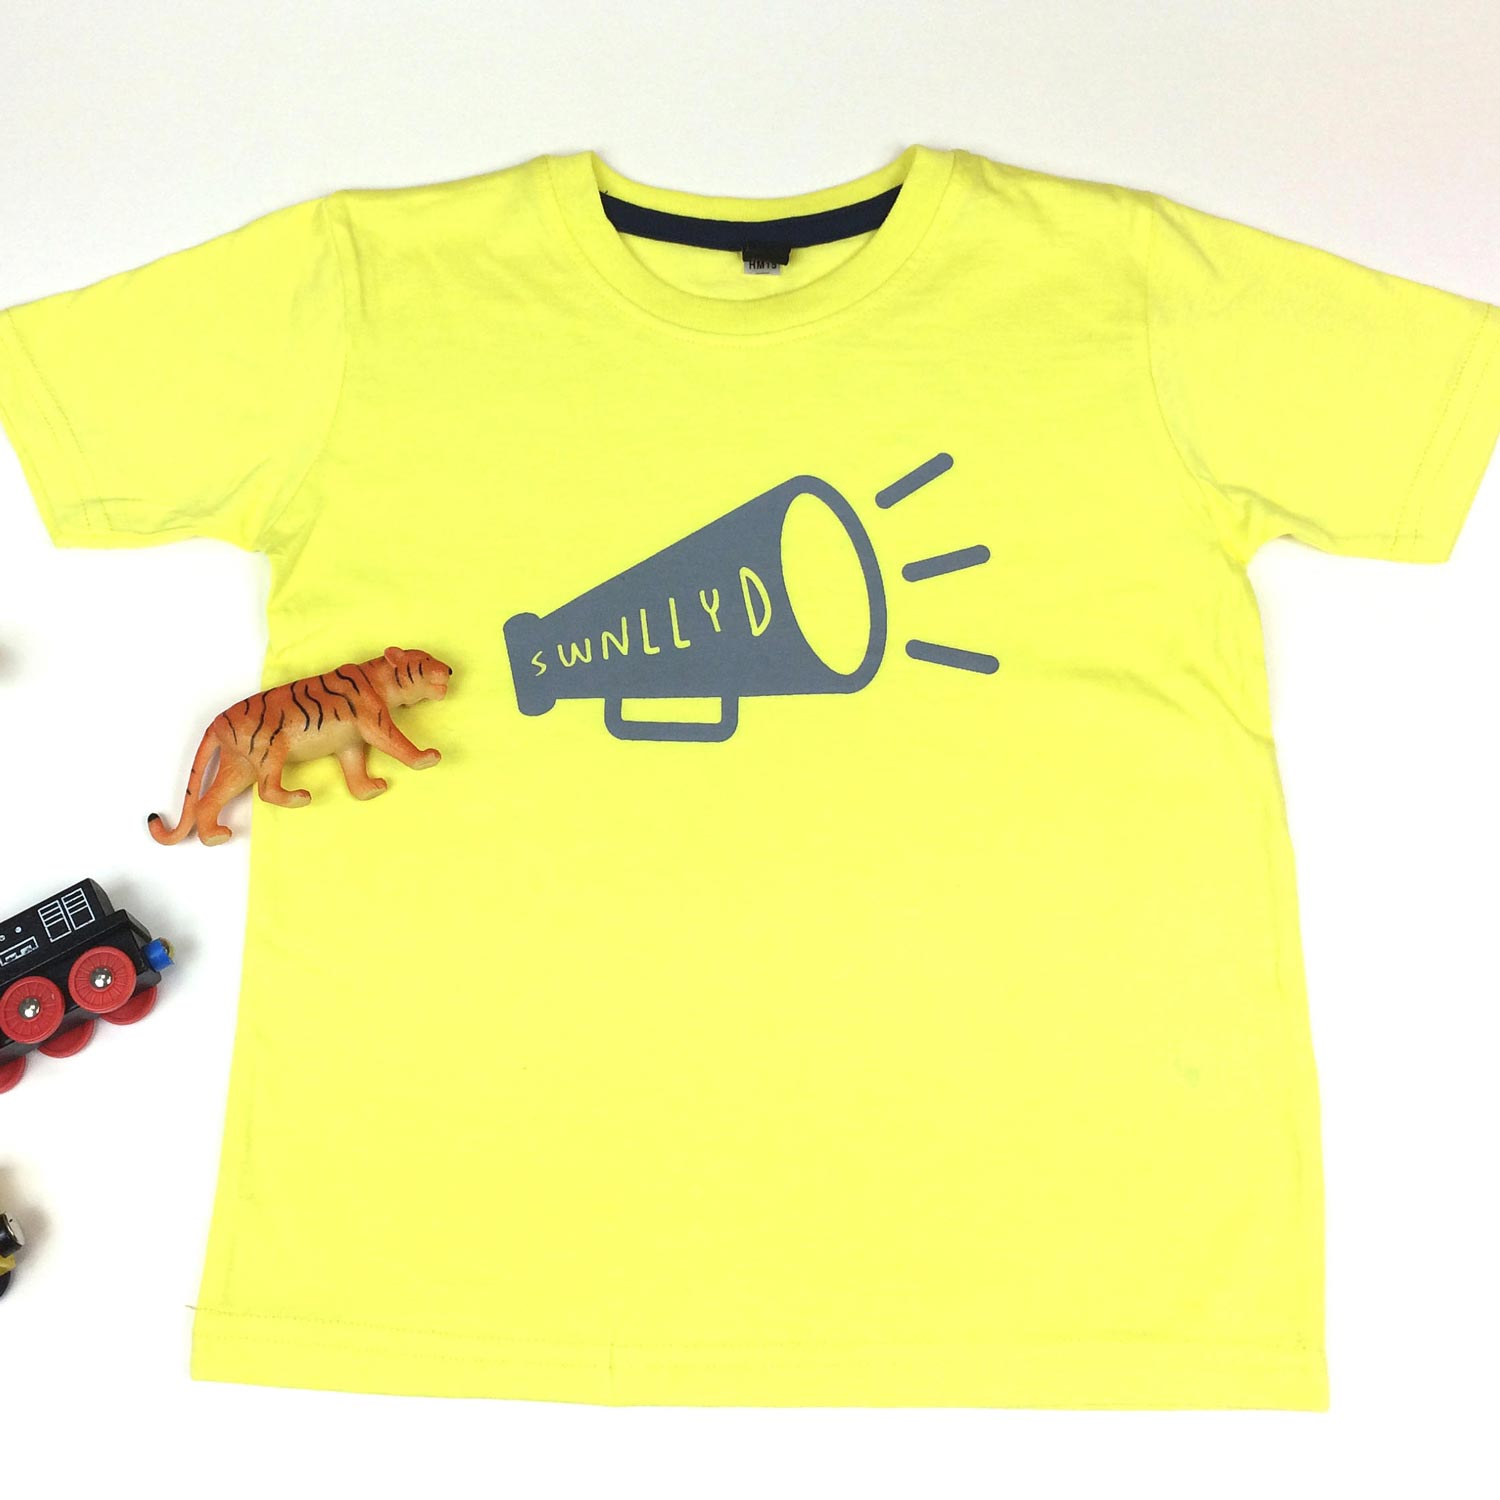 T-shirt - Toddler / Kids - Noisy - Swnllyd - Yellow